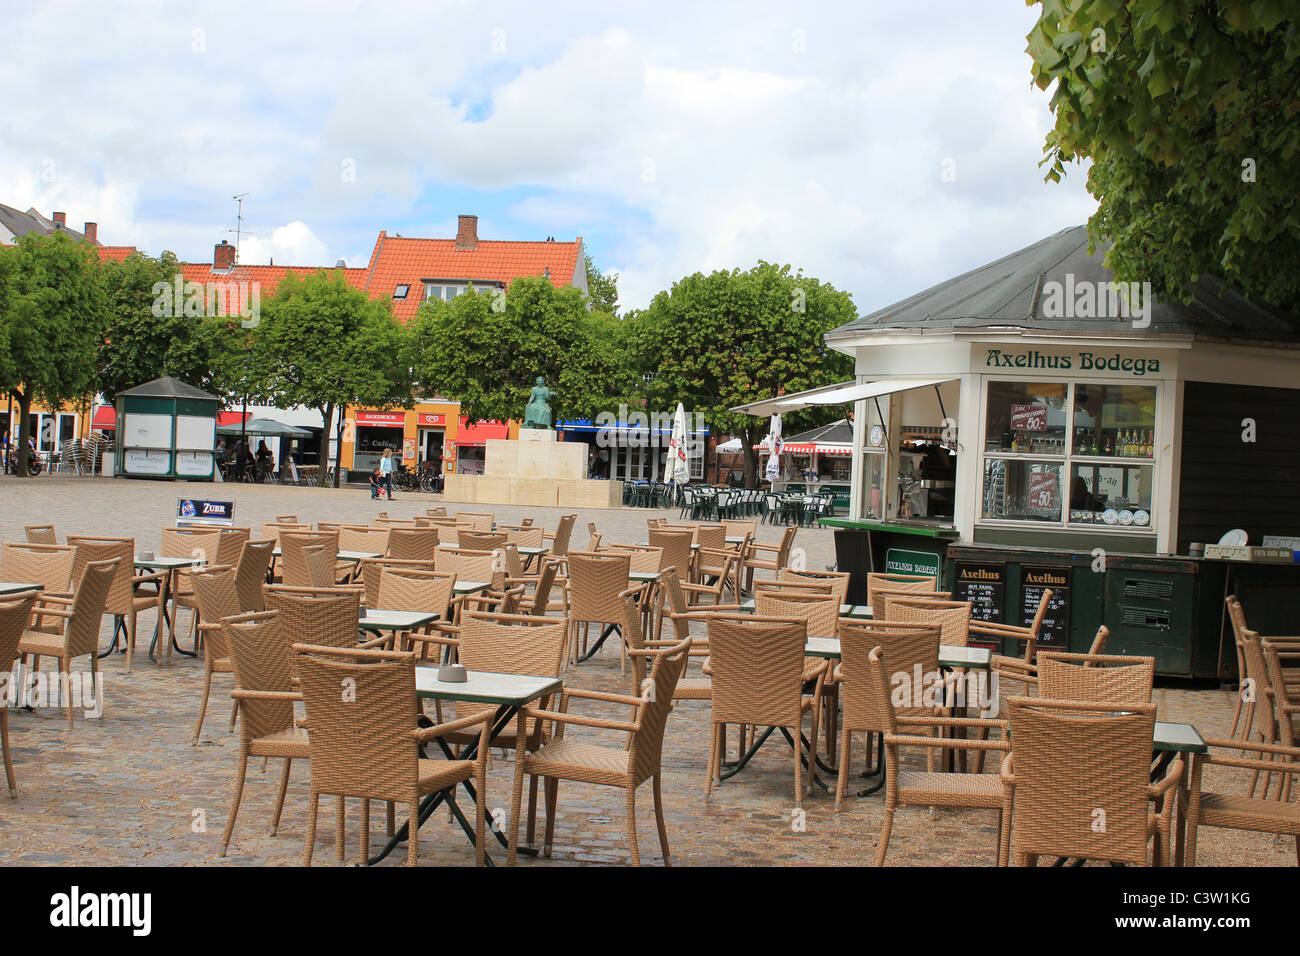 Outdoors cafe in down town Helsingør, Denmark - Stock Image